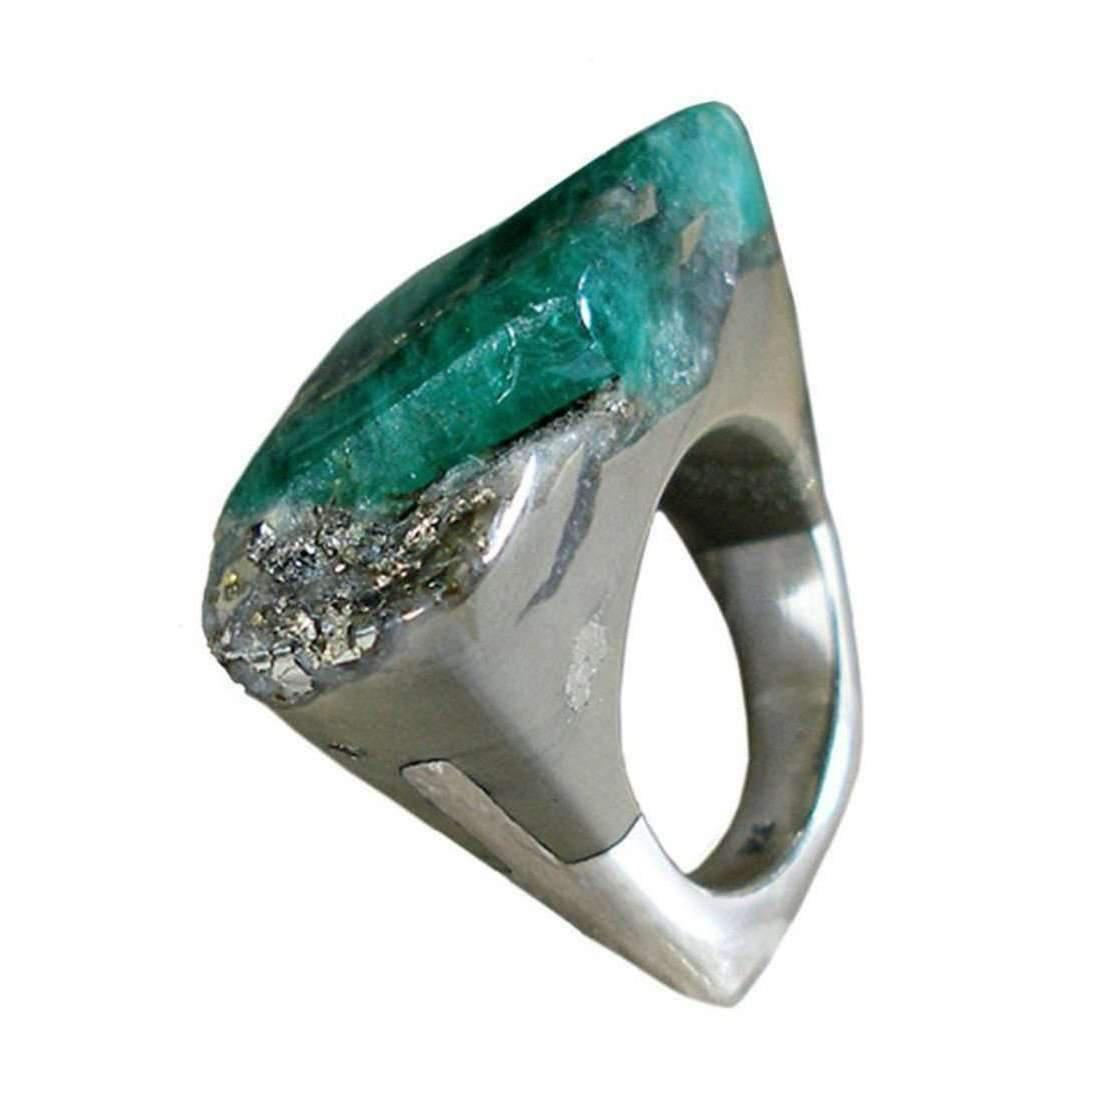 Pasionae Murano Ring - Hatred - UK N - US 6 1/2 - EU 54